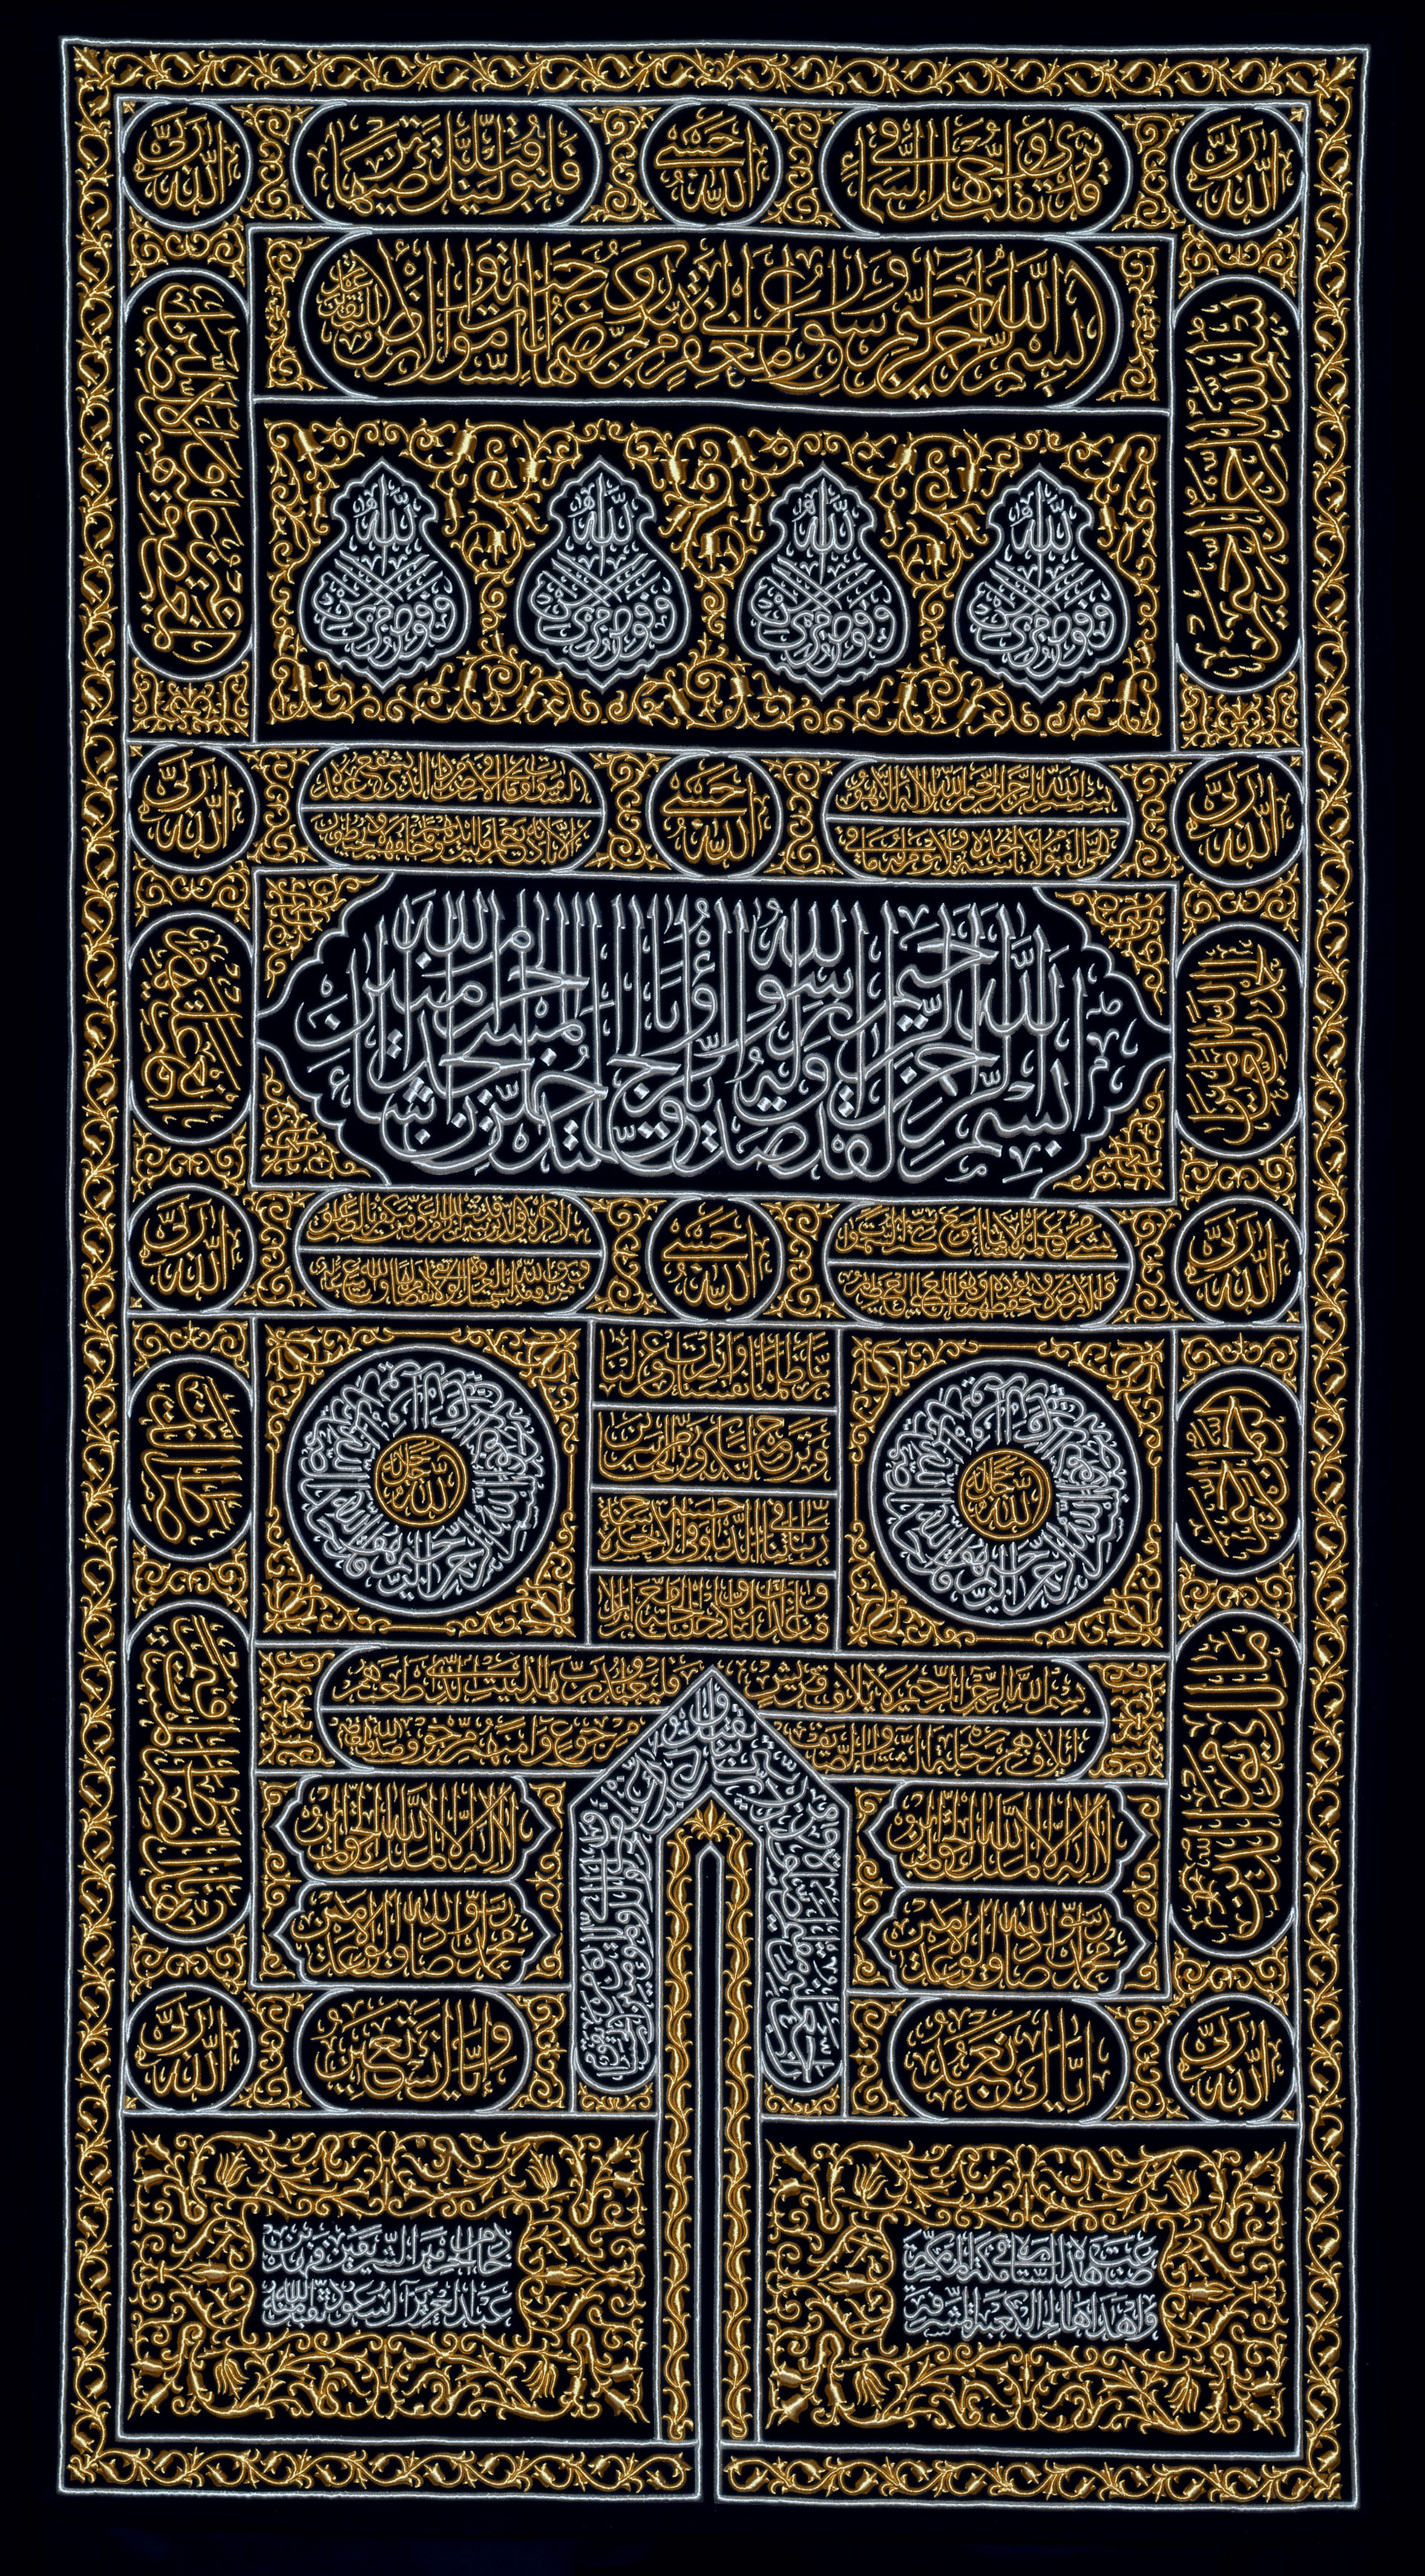 Sitarah for the door of the Ka'bah, embroidered on kiswah fabric presented by King Fahd